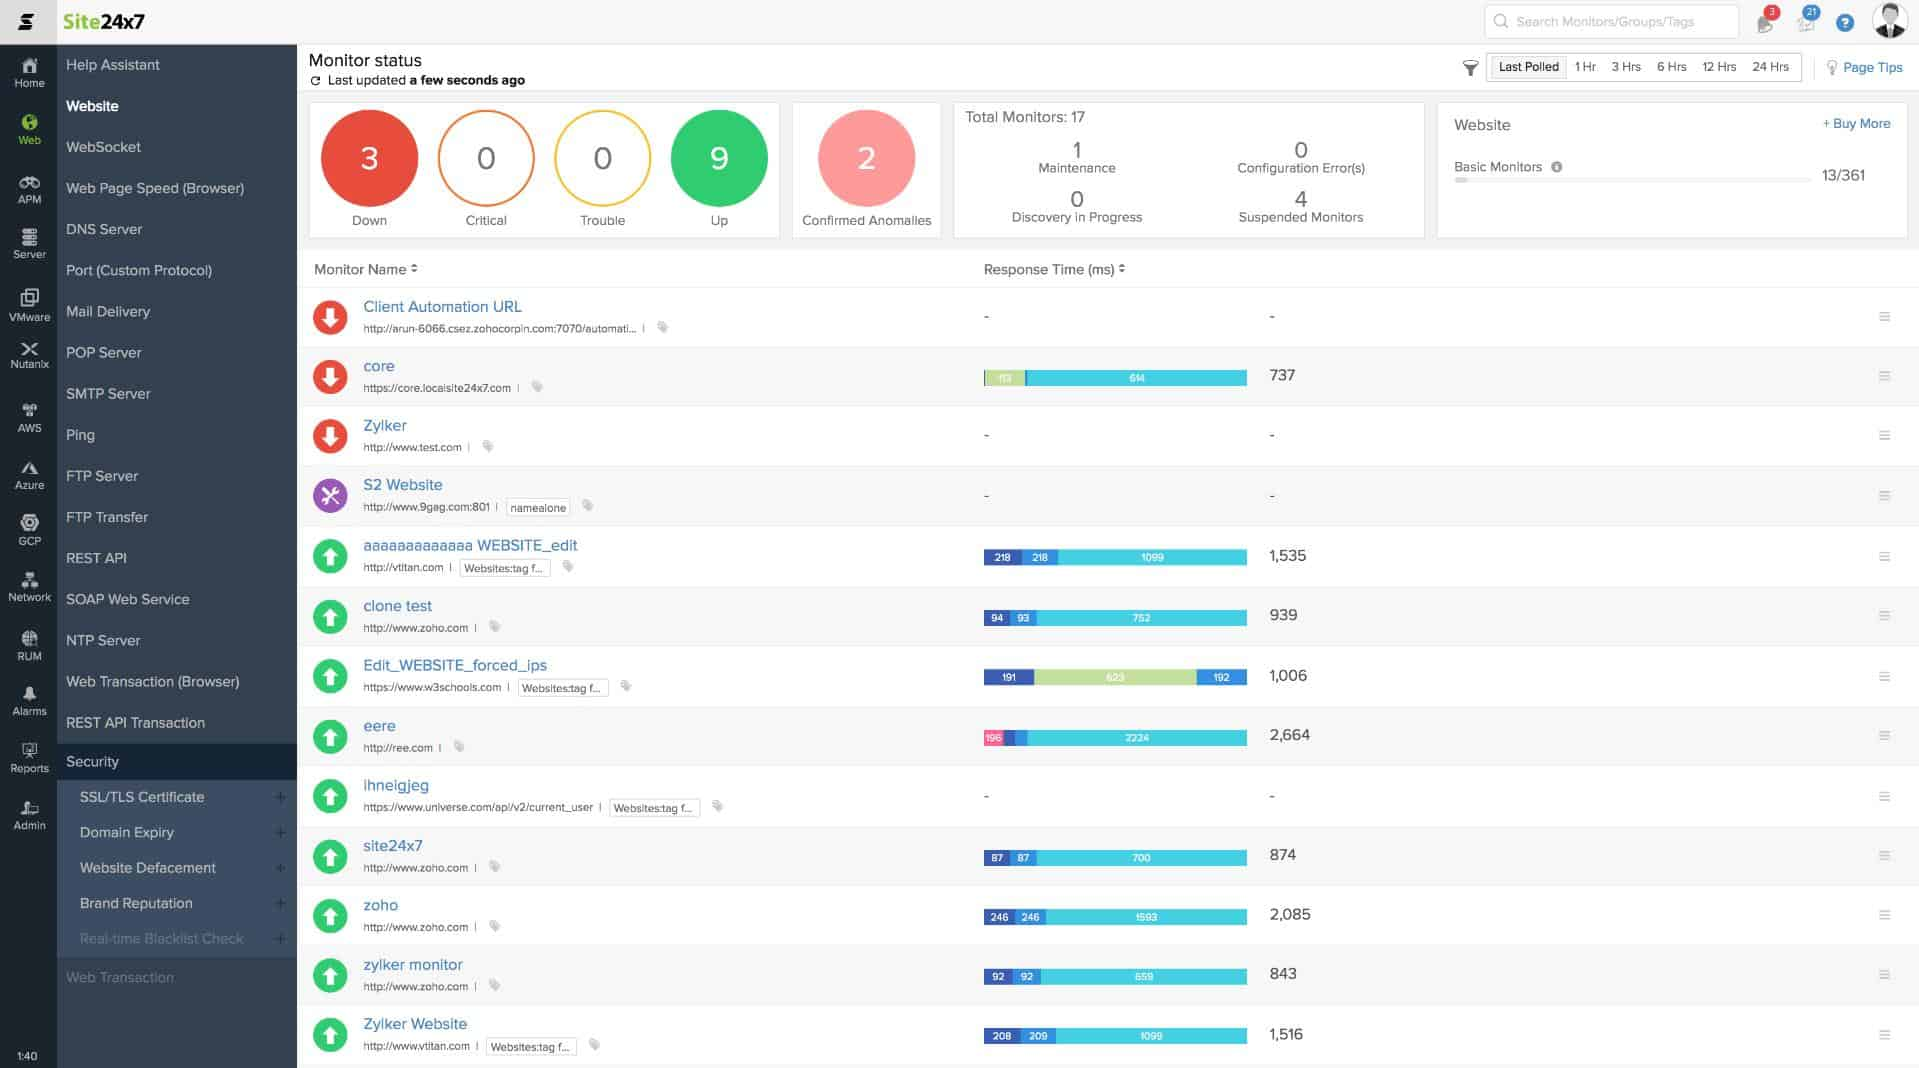 Site24x7 Website Monitoring